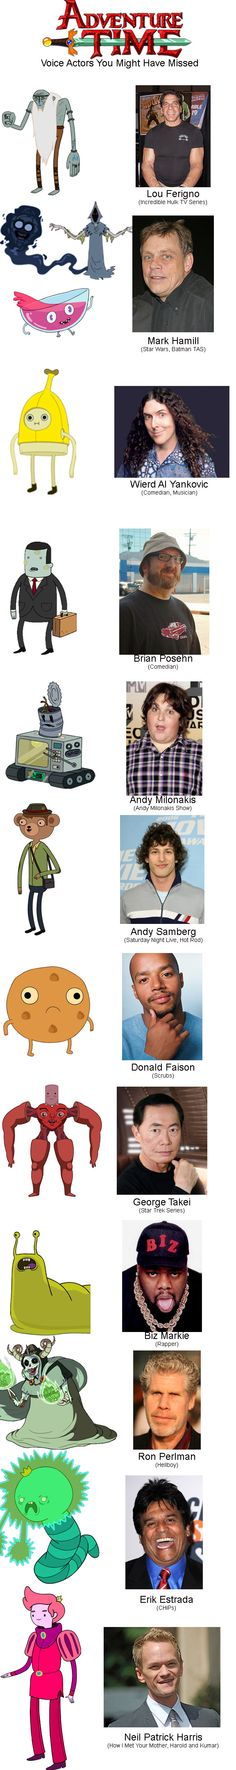 Adventure Time voice actors you may have missed. FREAK THE MIND BLOWN!!!